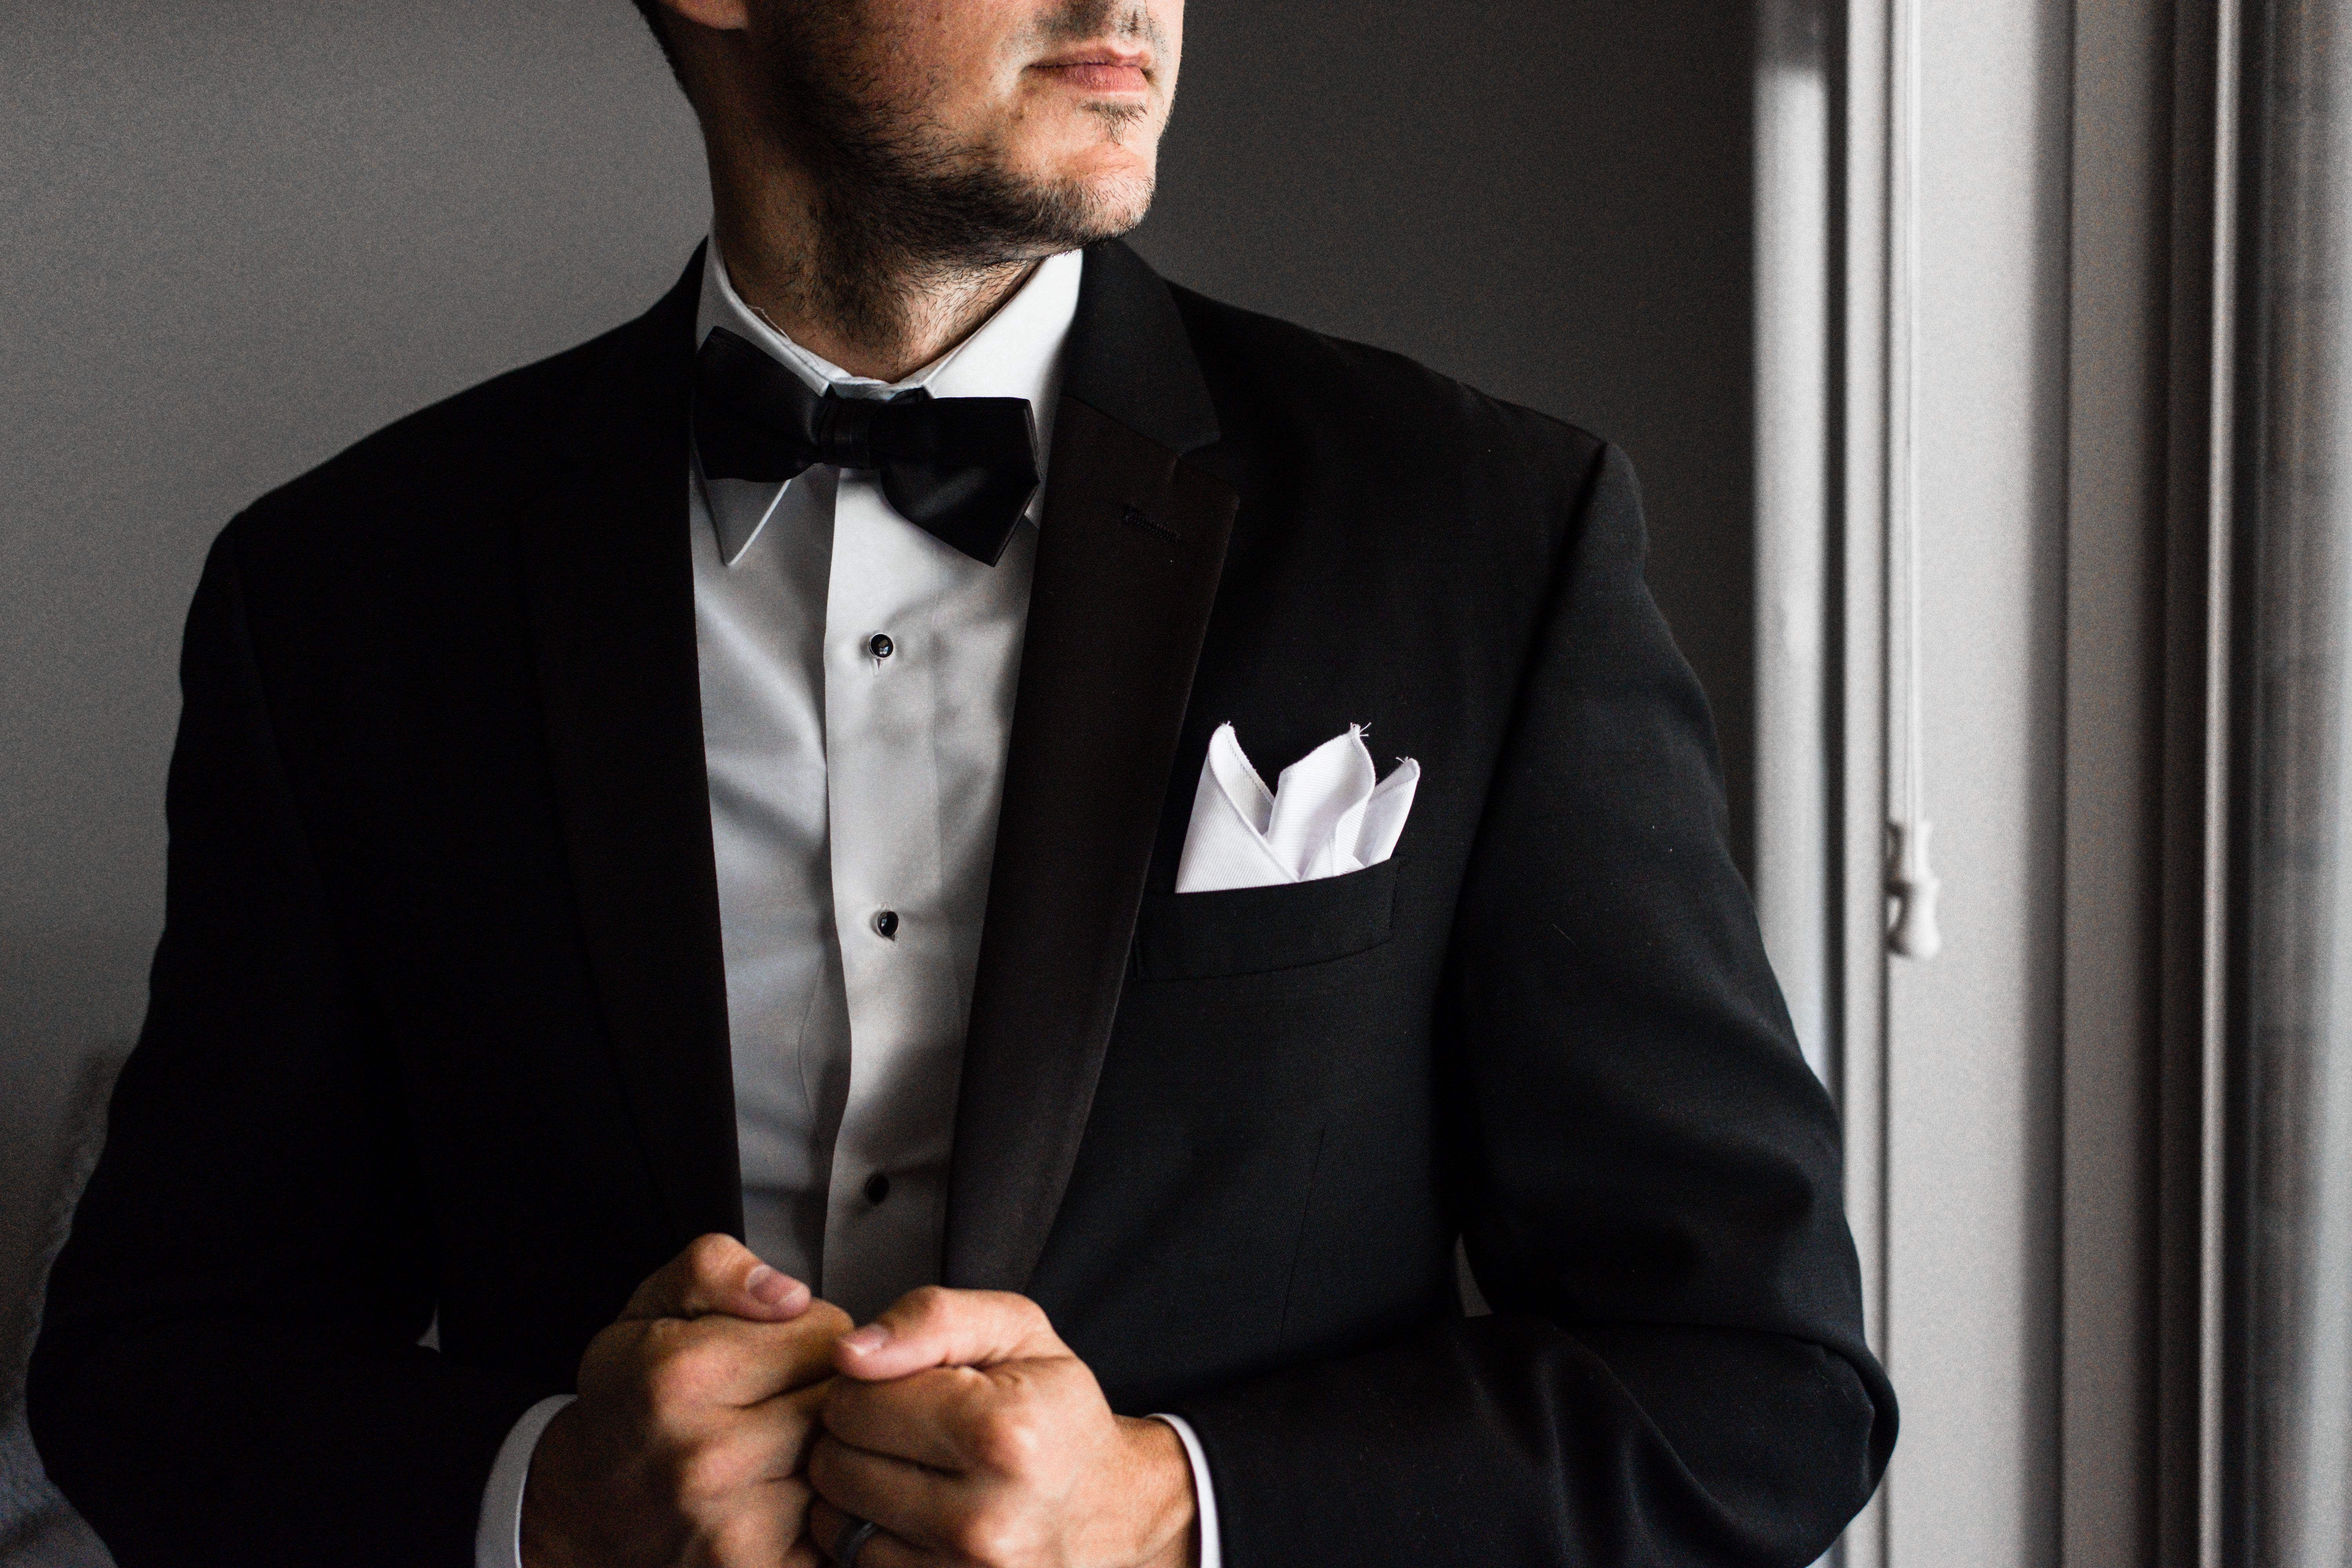 Never settle with menguintux rental suits and tuxedos goo